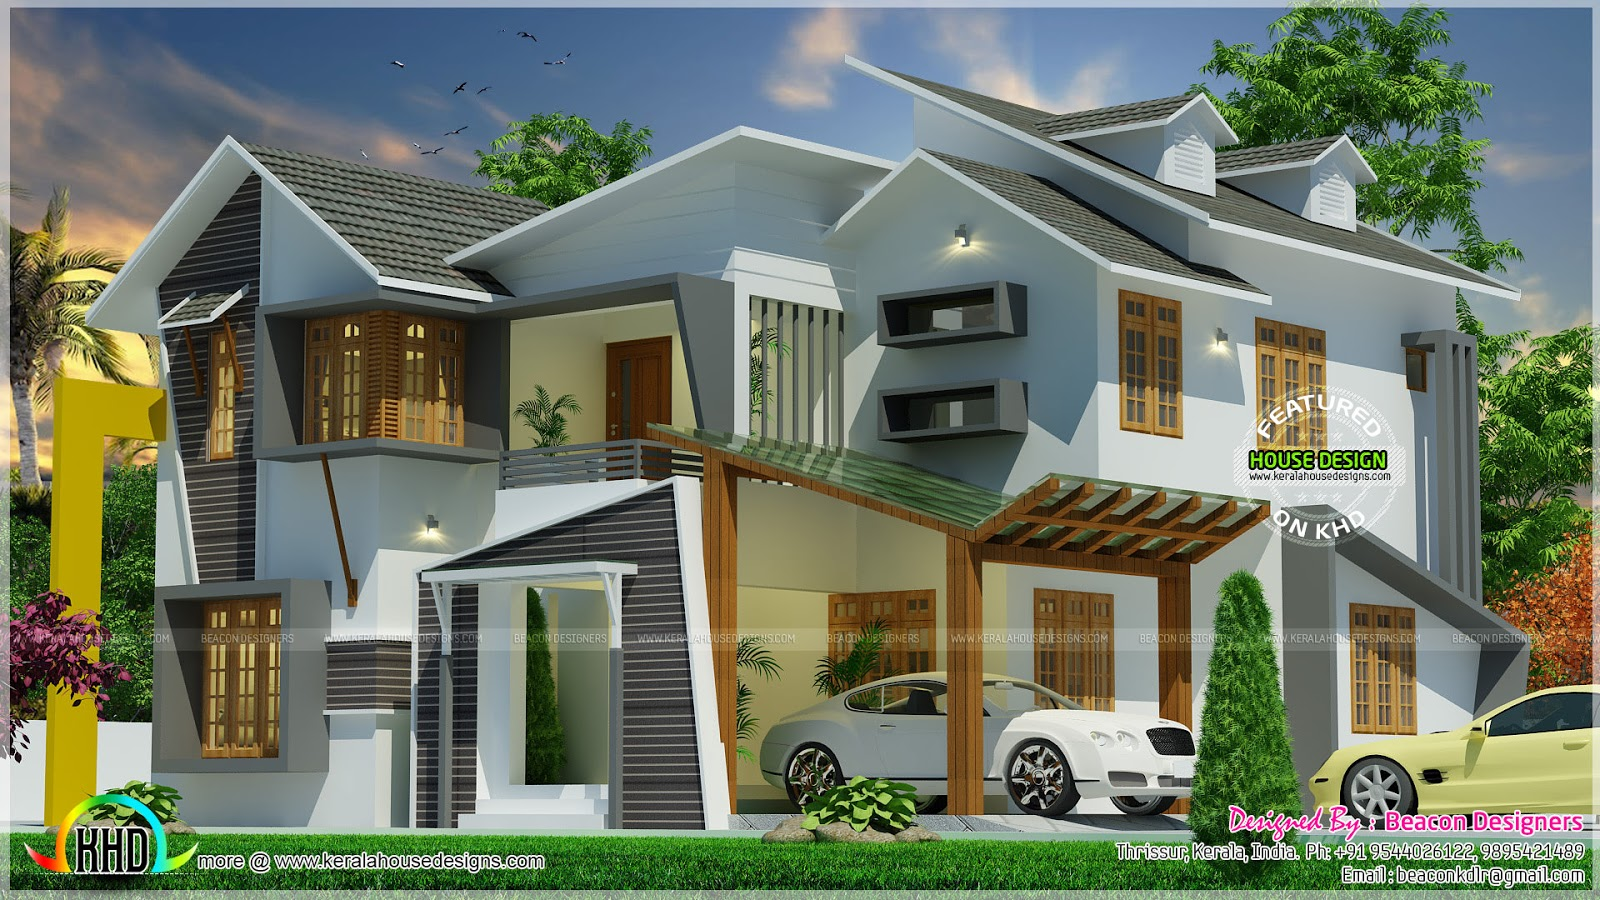 Ultra modern home with dormer windows kerala home design for Ultra modern house